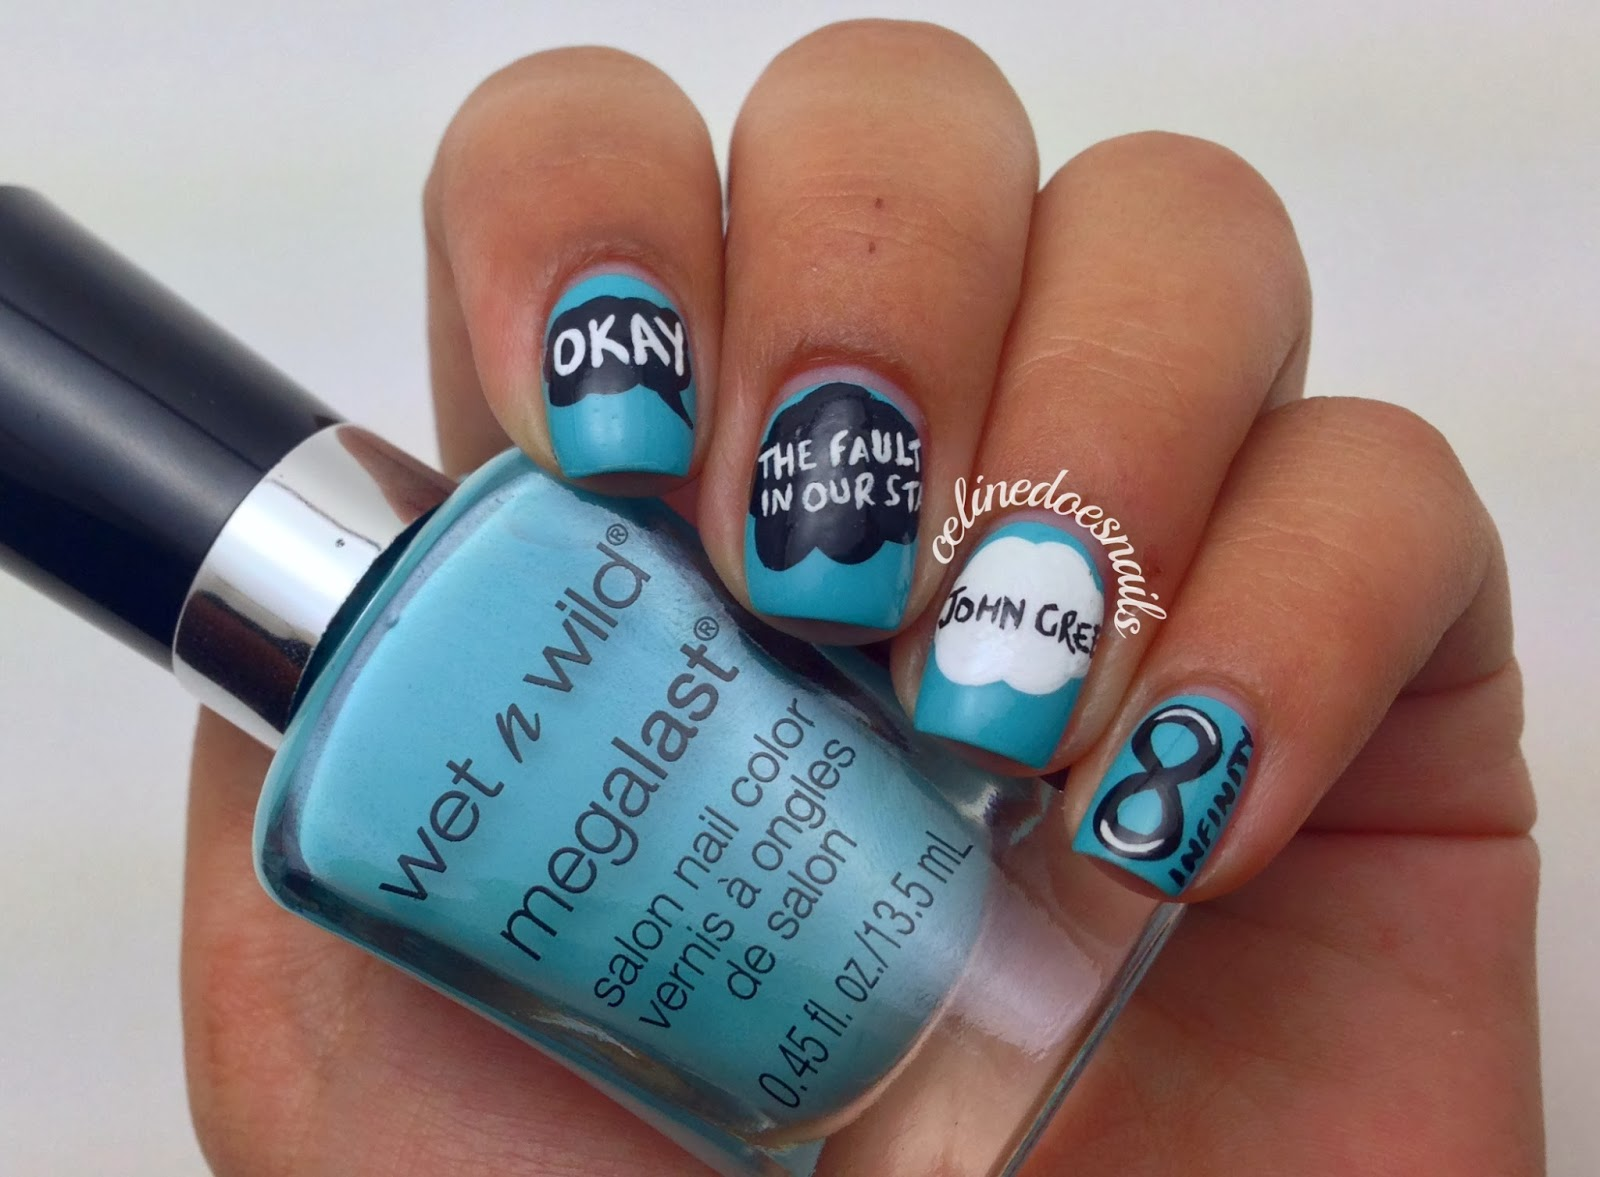 Nail designs with words images nail art and nail design ideas nail designs with words choice image nail art and nail design ideas words on nails designs prinsesfo Choice Image